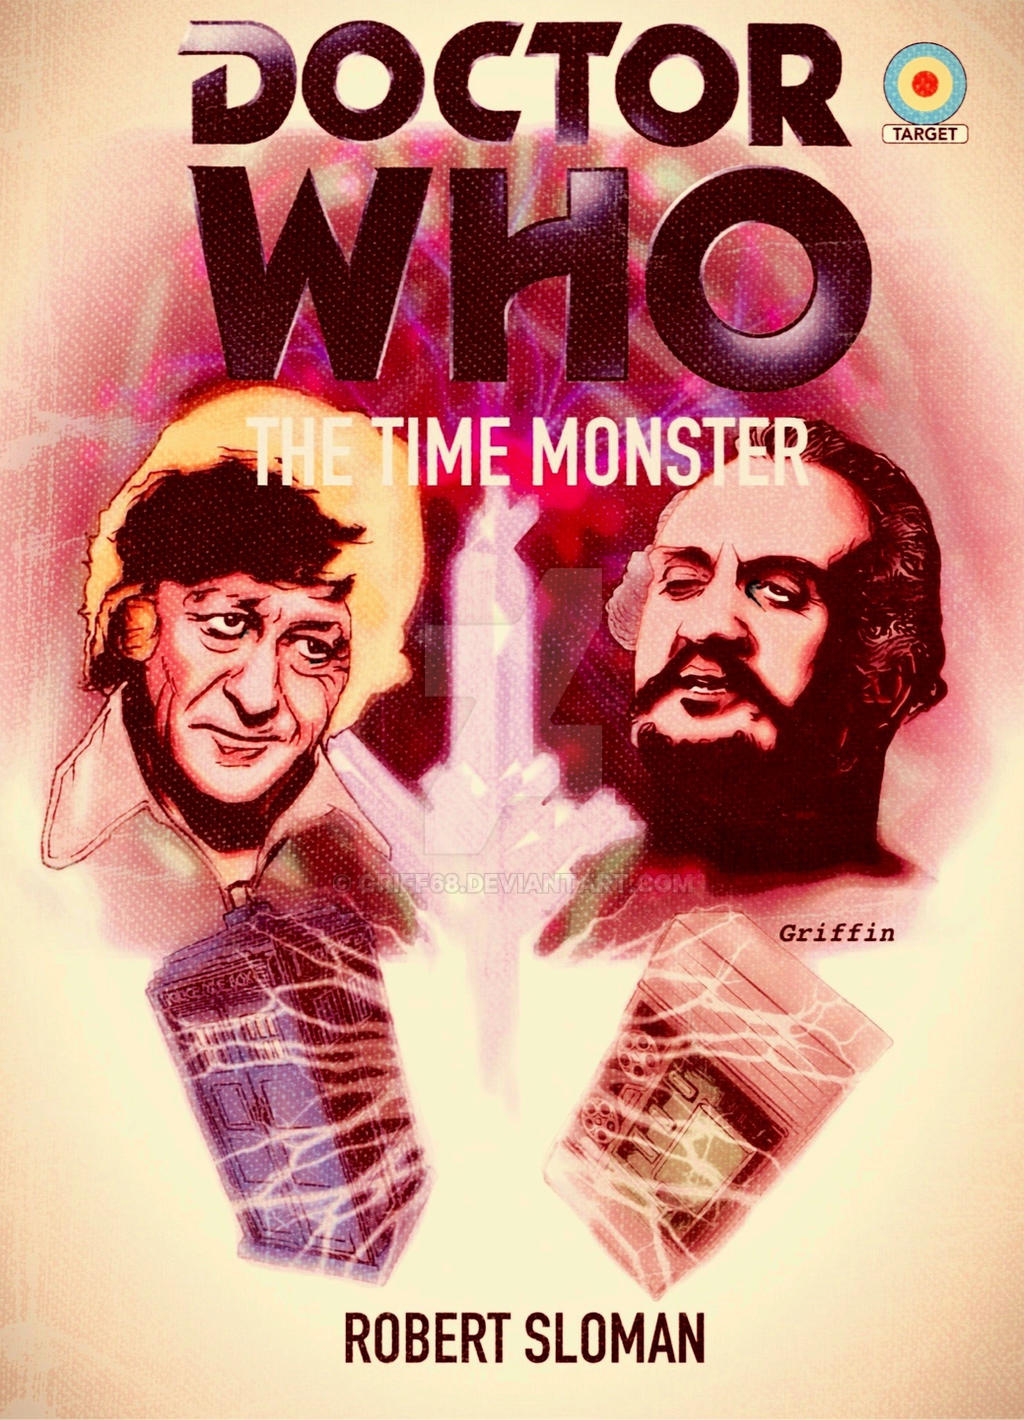 DOCTOR WHO: THE TIME MONSTER MOCK TARGET BOOK by griff68 on DeviantArt